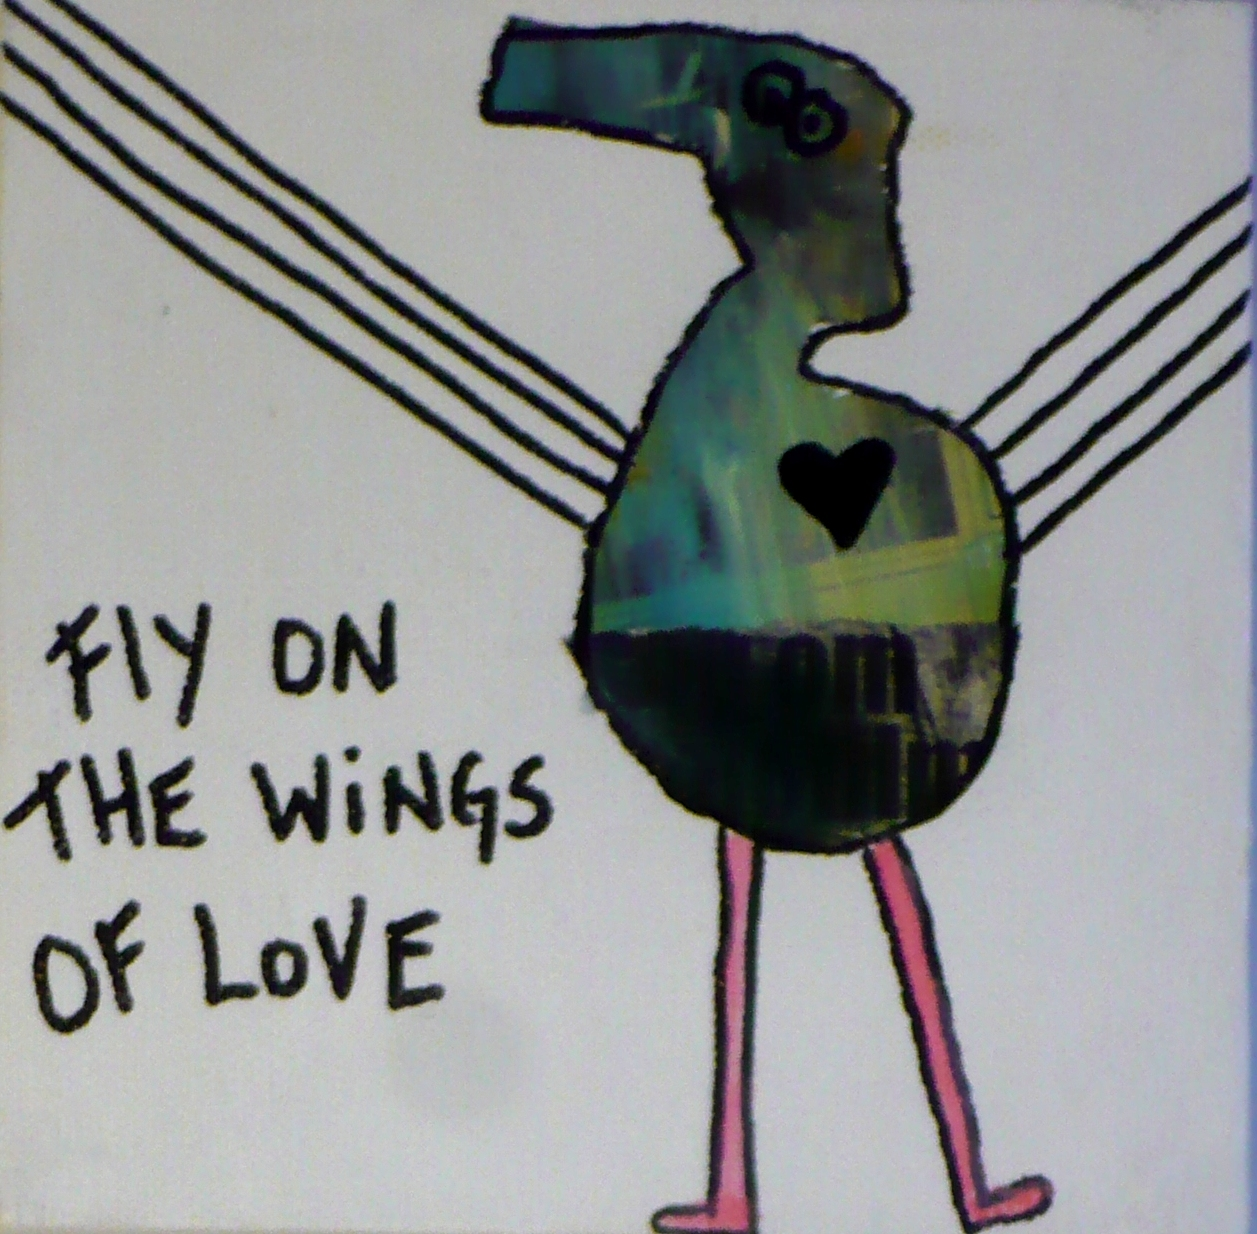 Wings of love.JPG